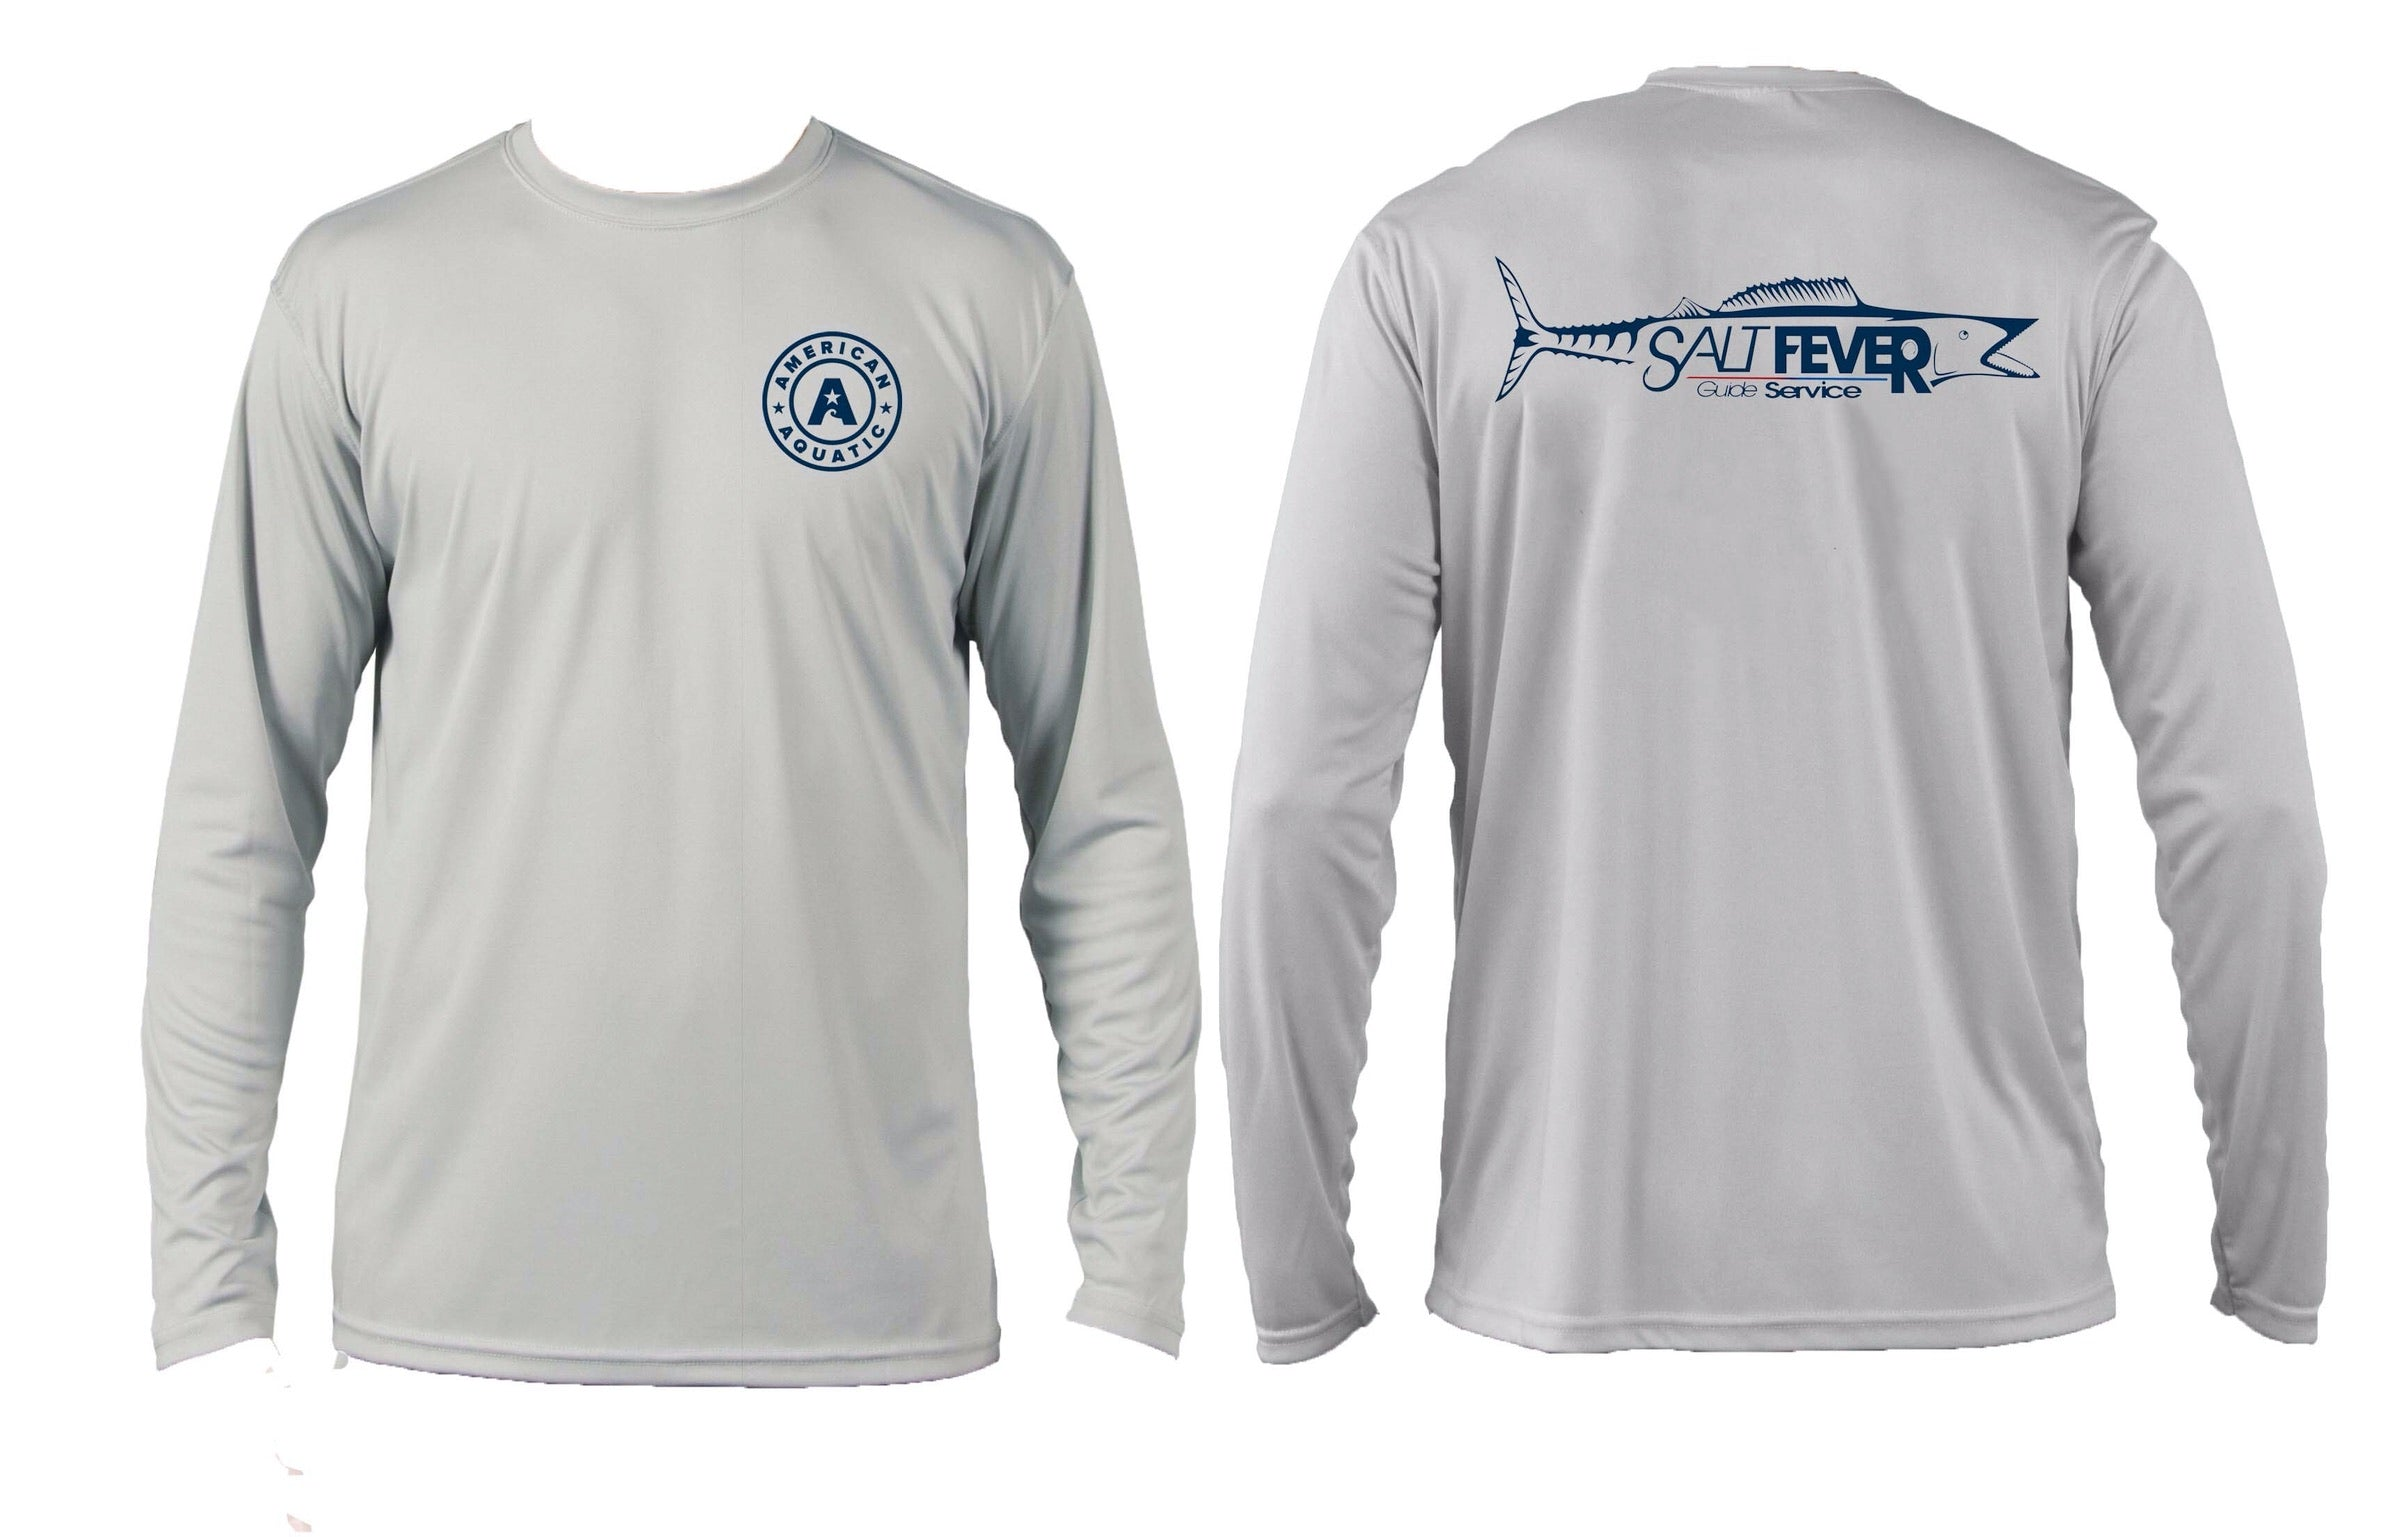 Salt Fever Performance Long Sleeve Shirt